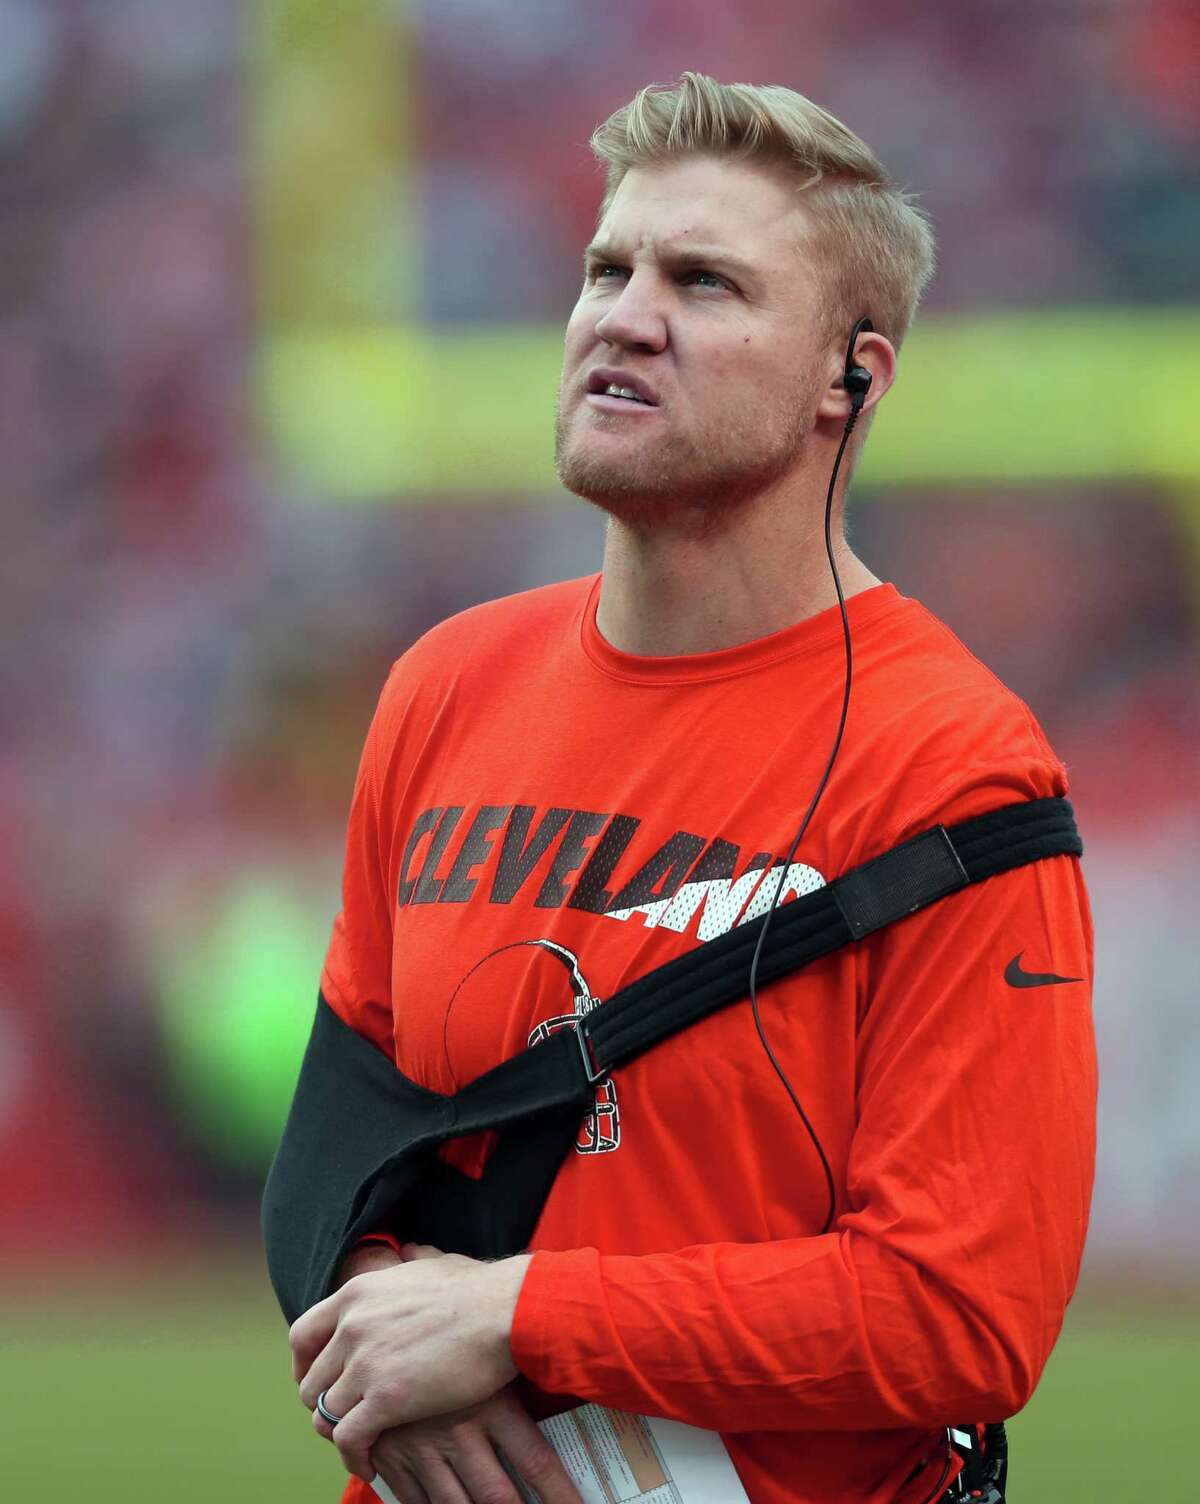 Browns quarterback Josh McCown watches from the sidelines during the second half against the San Francisco 49ers on Dec. 13, 2015, in Cleveland.